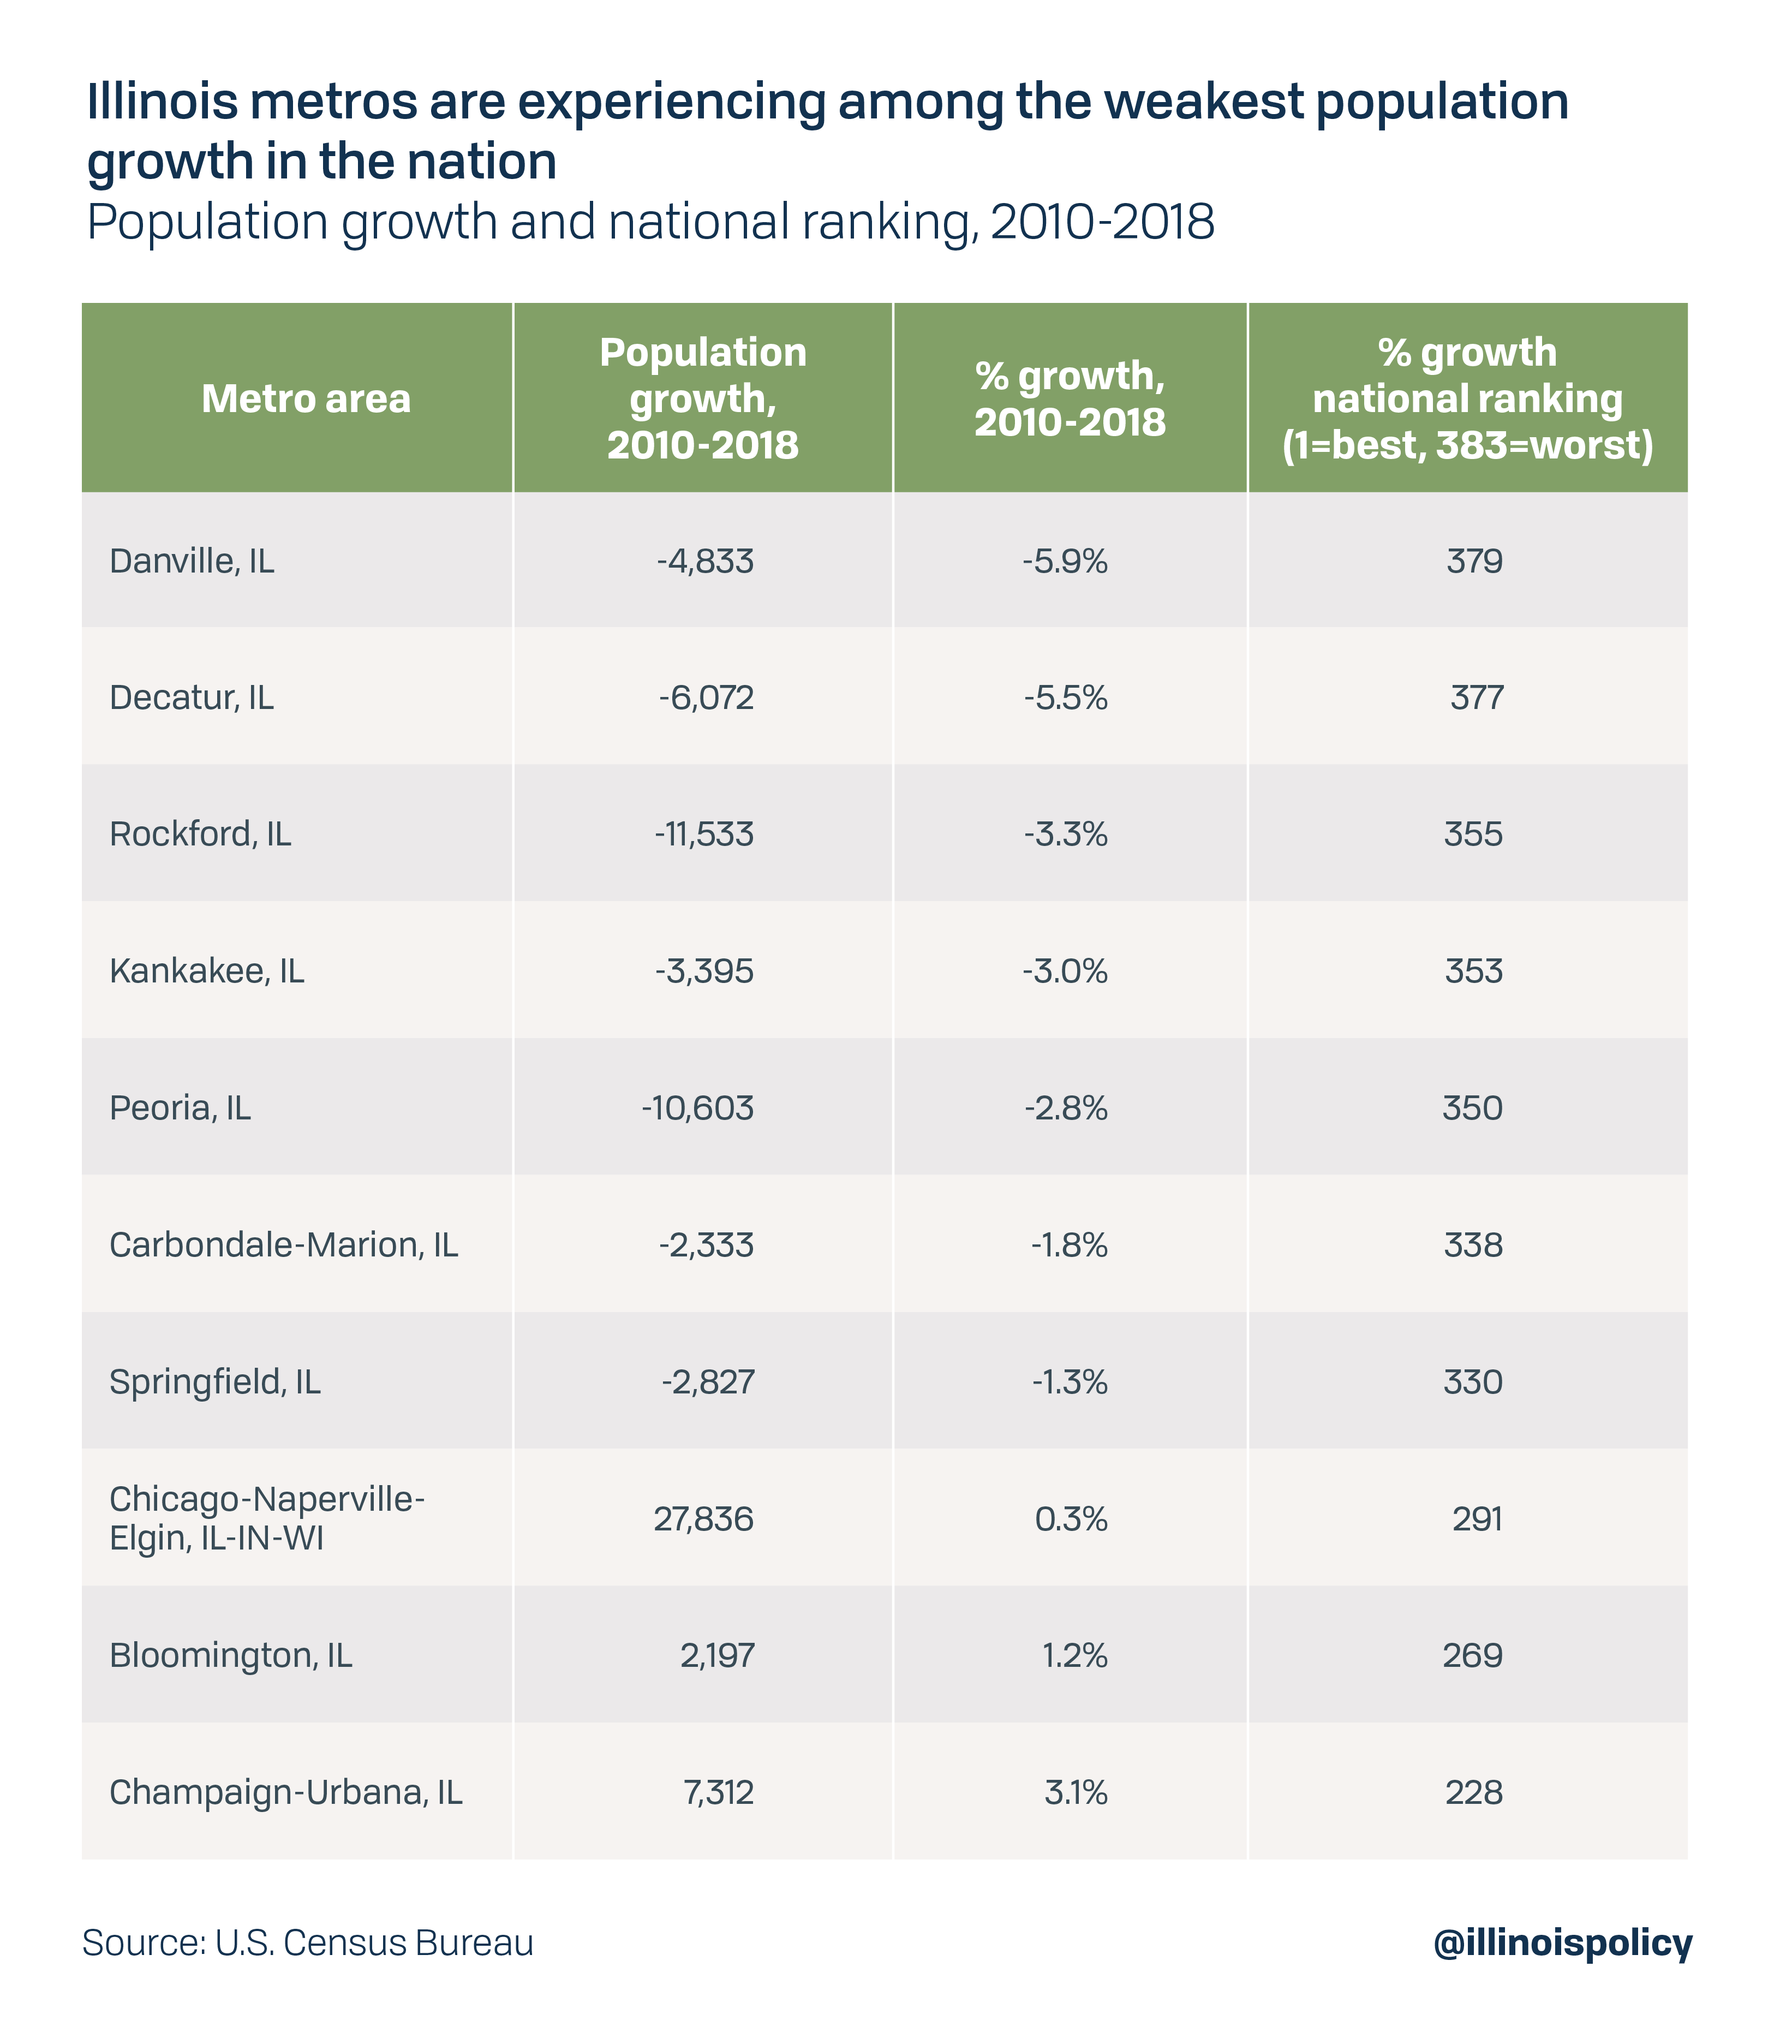 Illinois metros are experiencing among the weakest population growth in the nation